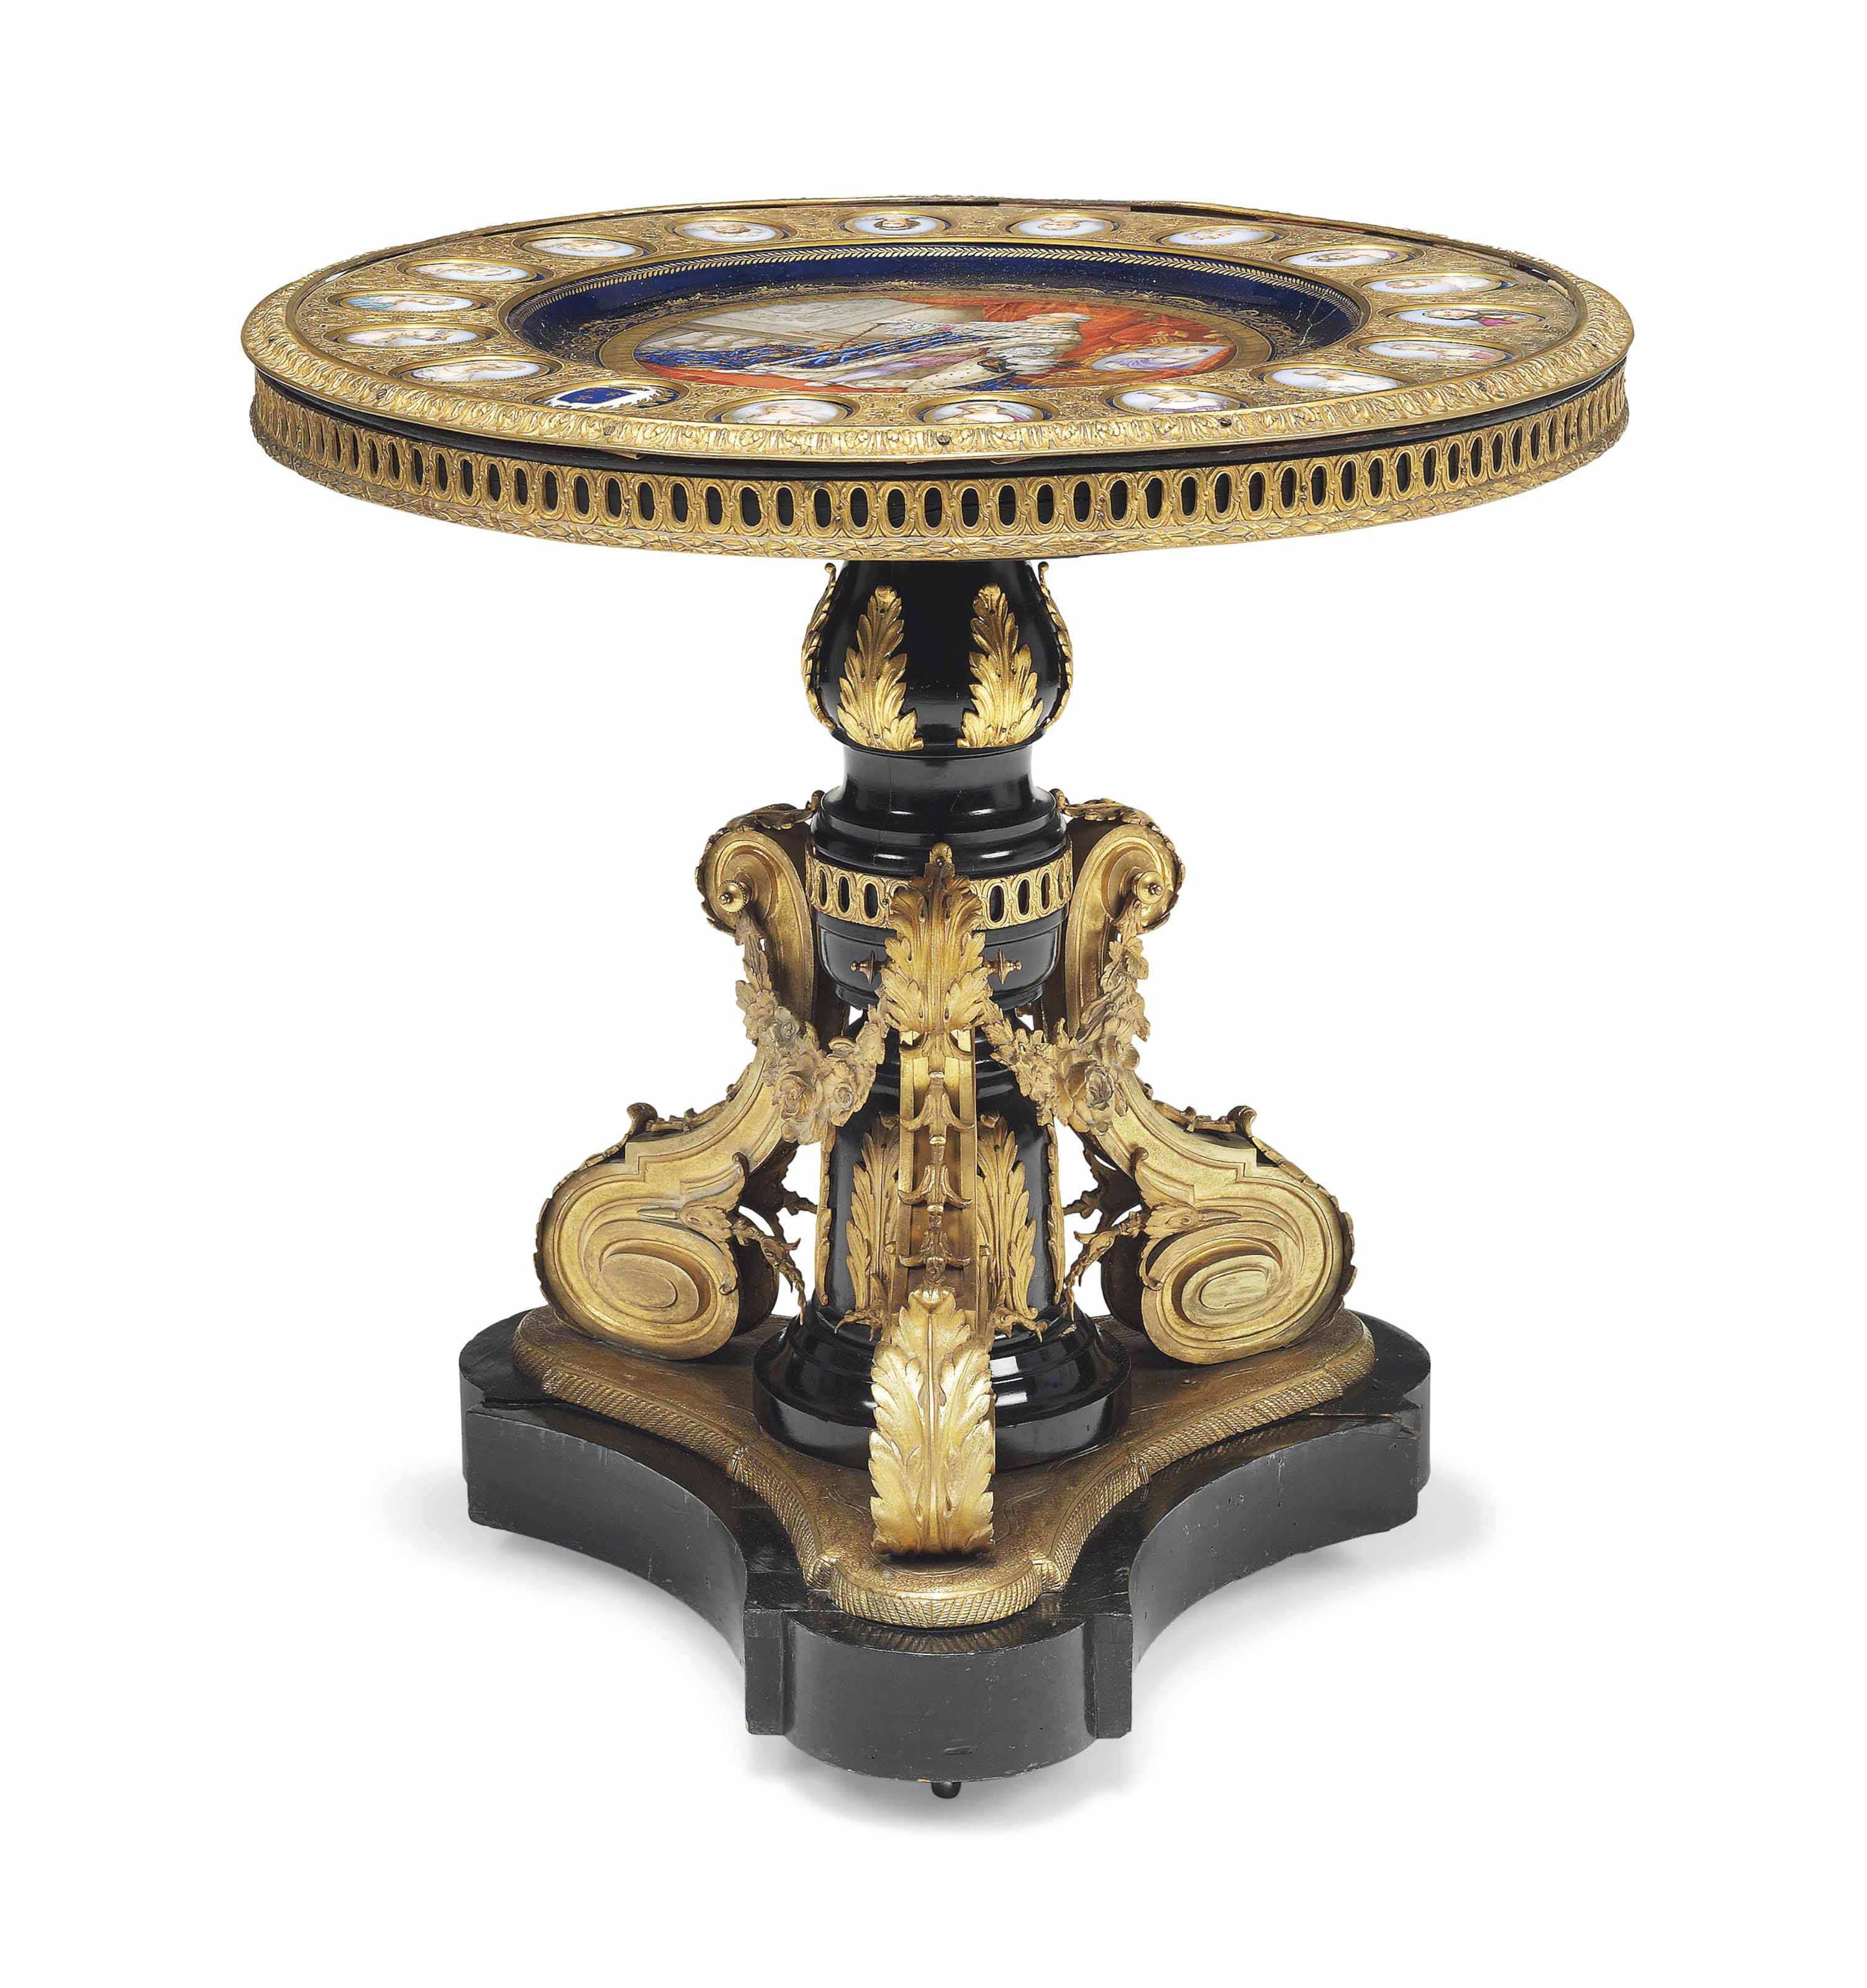 A NAPOLEON III ORMOLU-MOUNTED AND COBALT-BLUE GROUND SEVRES-STYLE PORCELAIN EBONISED CENTRE TABLE